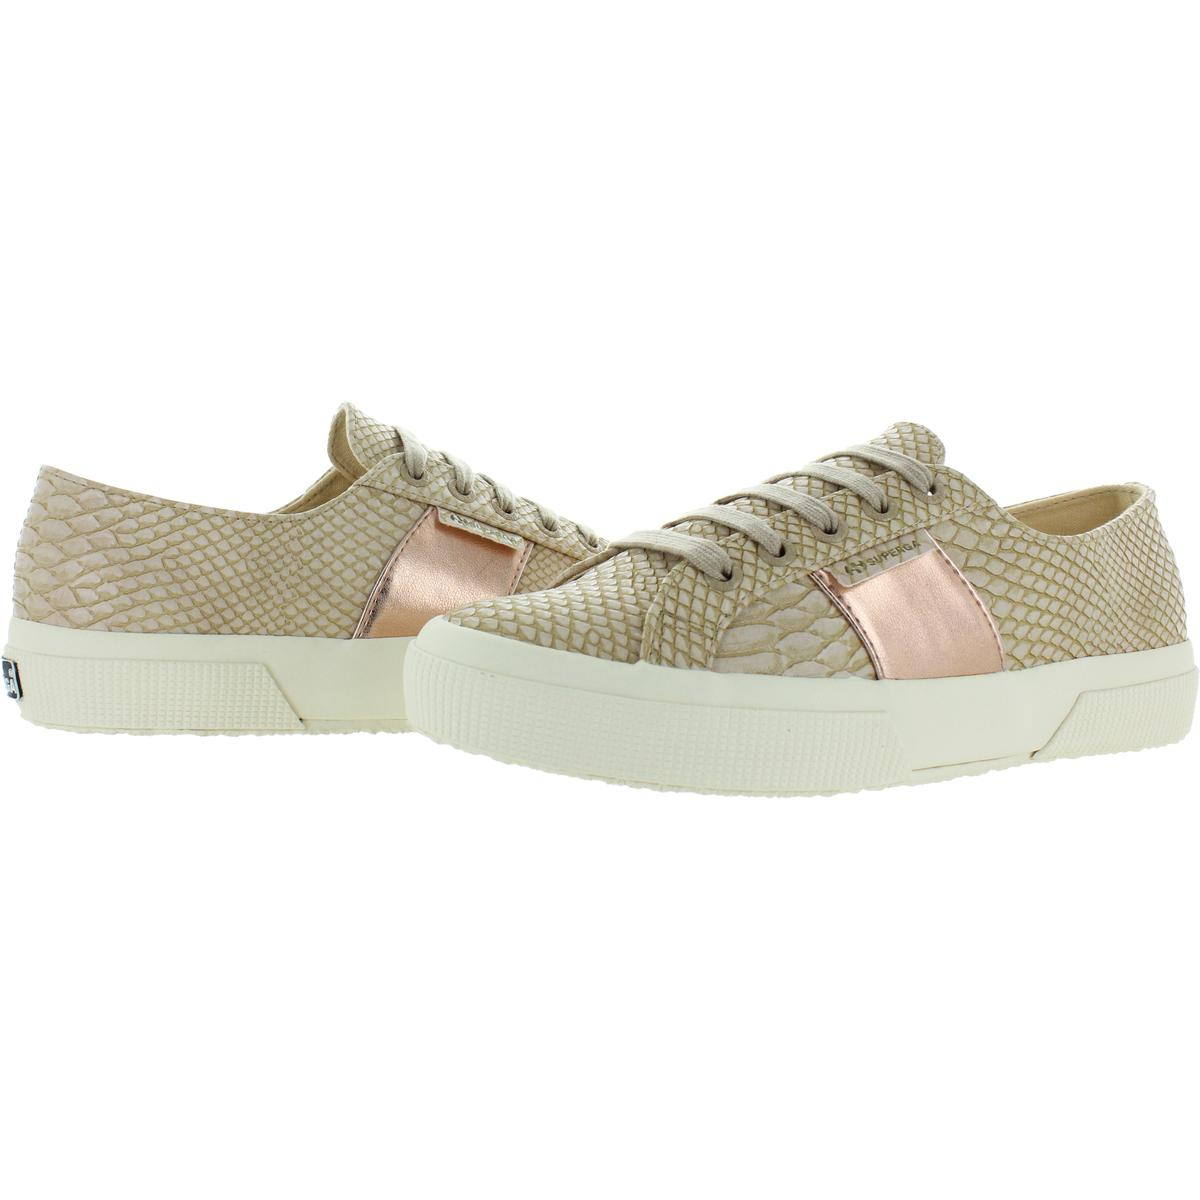 Superga Womens 2750 Faux Leather Croc-Embossed Low-Top Sneakers Shoes BHFO 0404